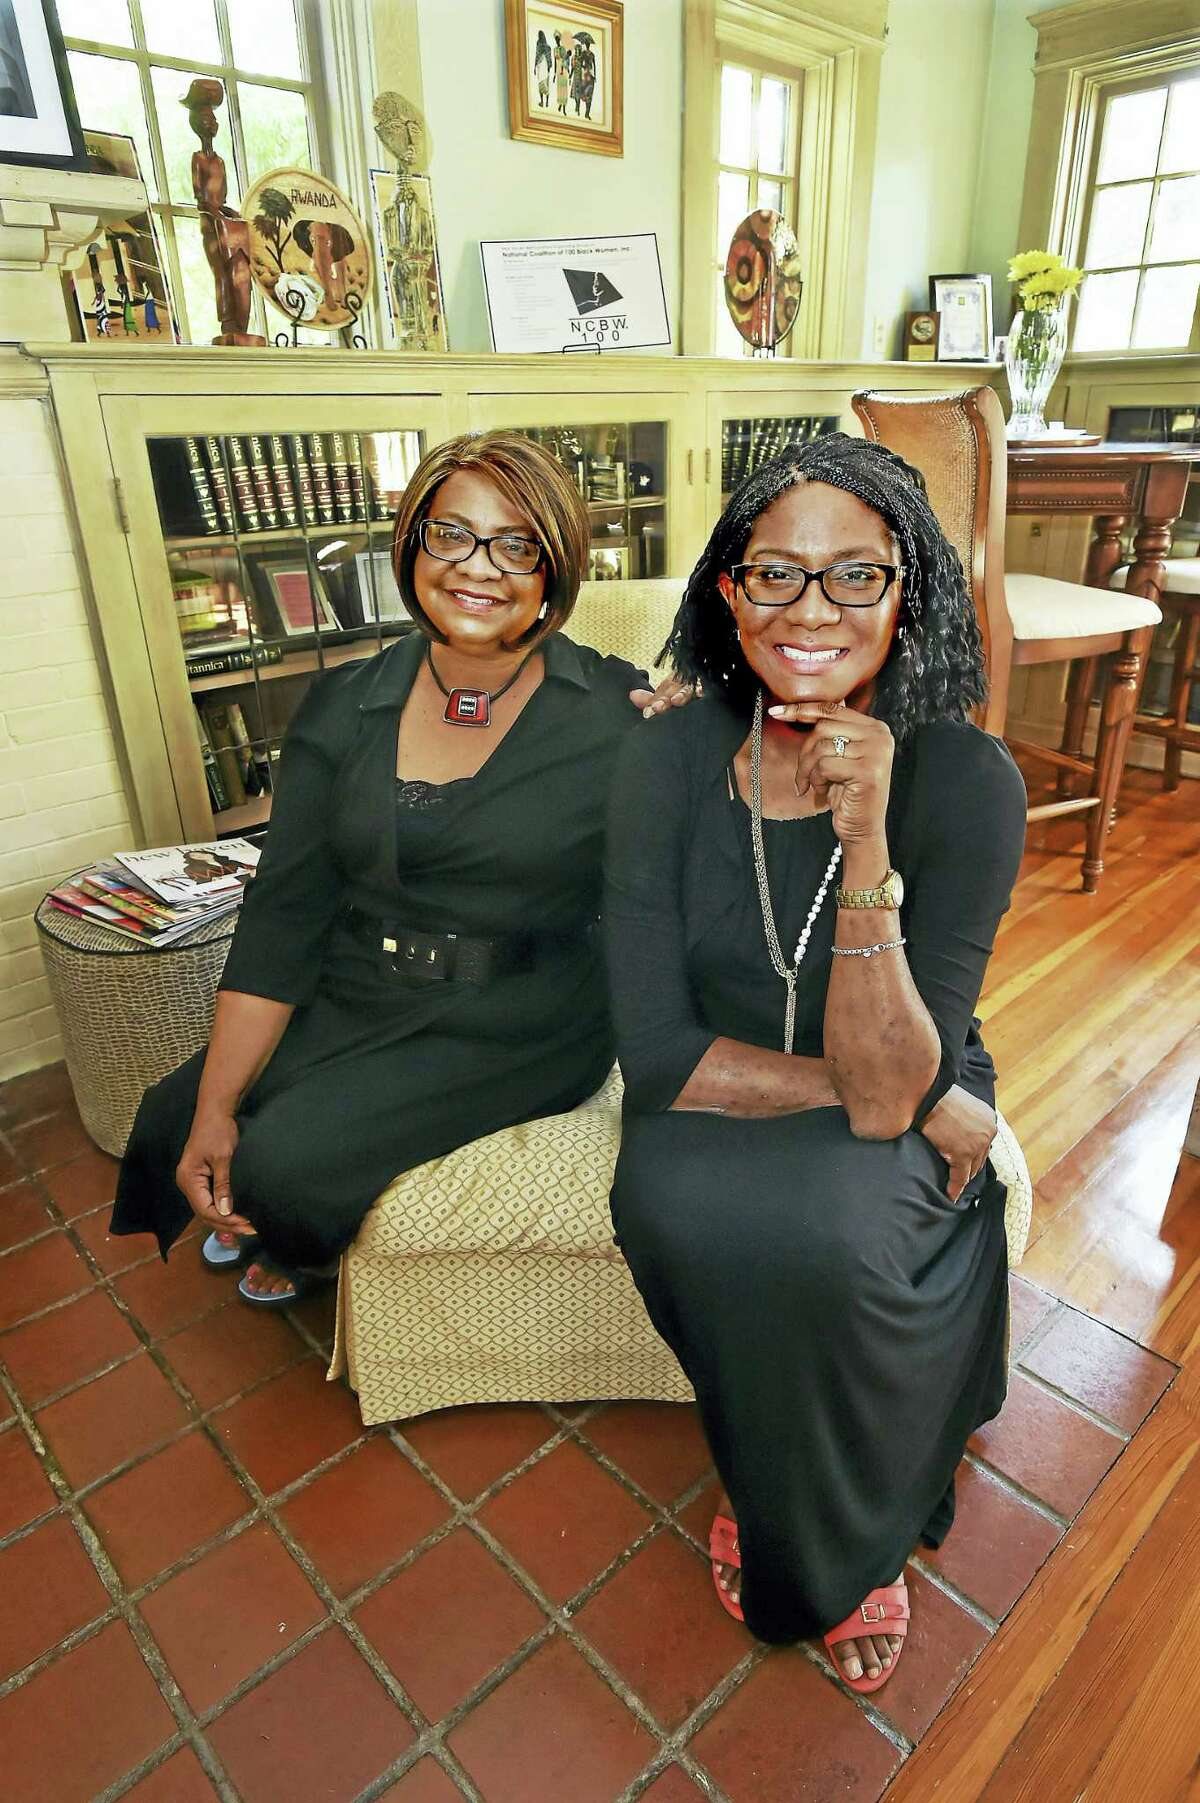 National Coalition of 100 Black Women Inc. New Haven Metropolitan chapter co-founders Melba Lee, chairwoman of the board of directors, left, and Valencia Goodridge, president-elect, at Goodridge's home.